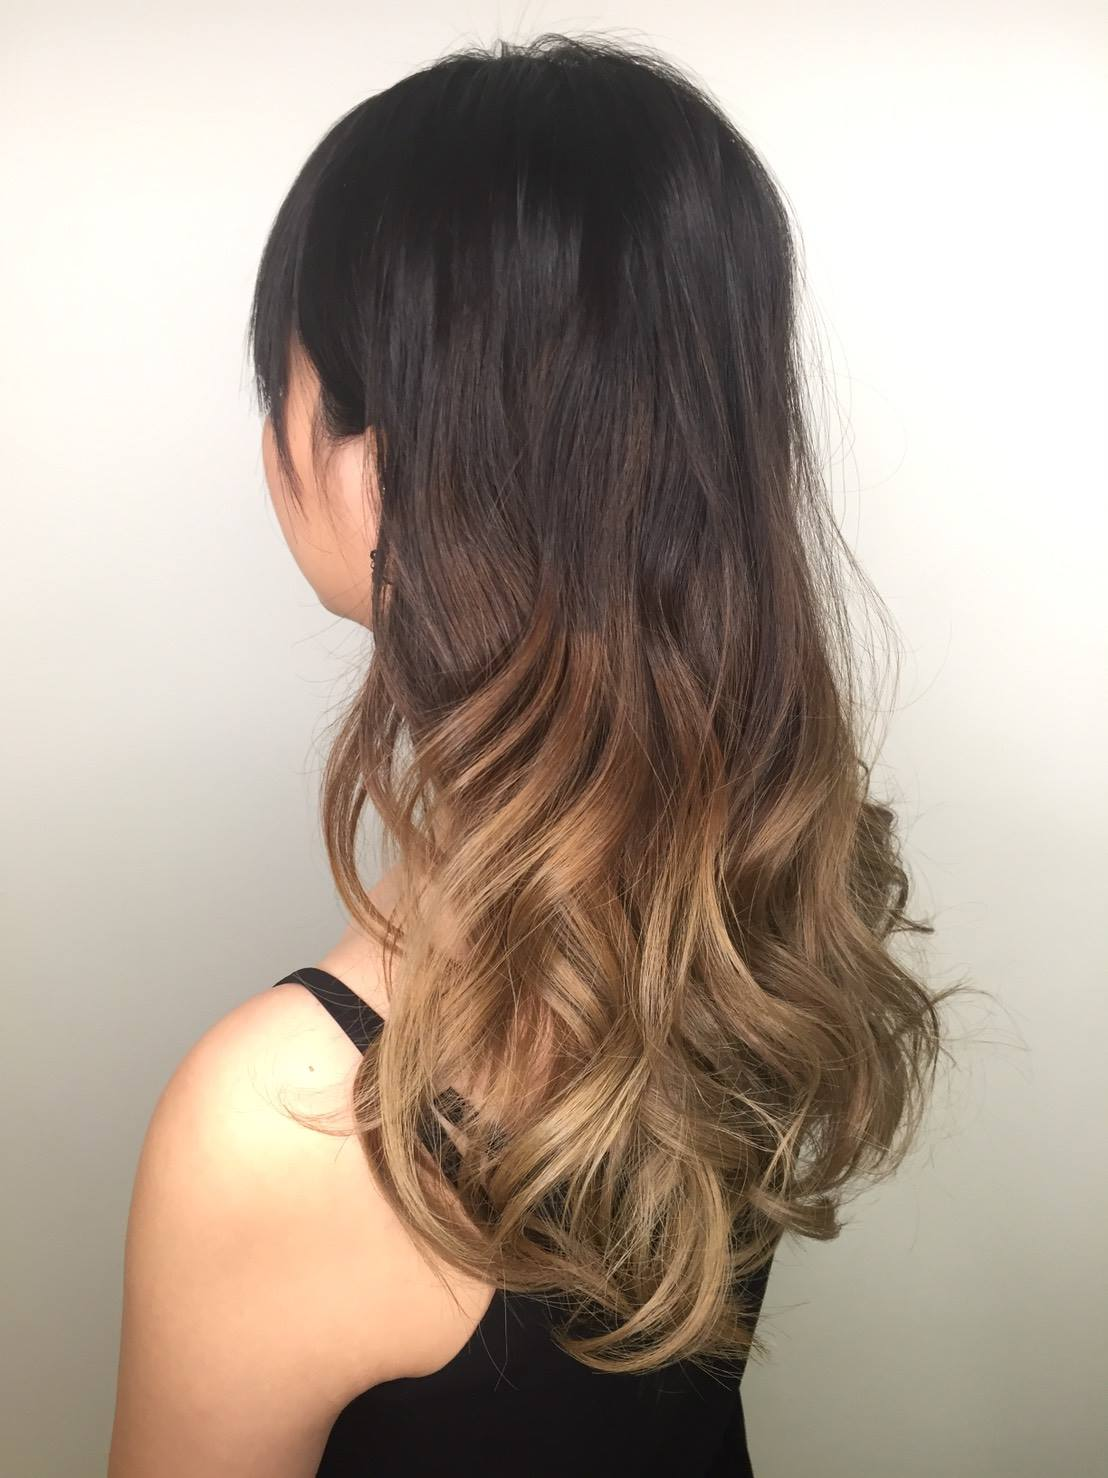 Blonde Ombre Hair Colour by Risel